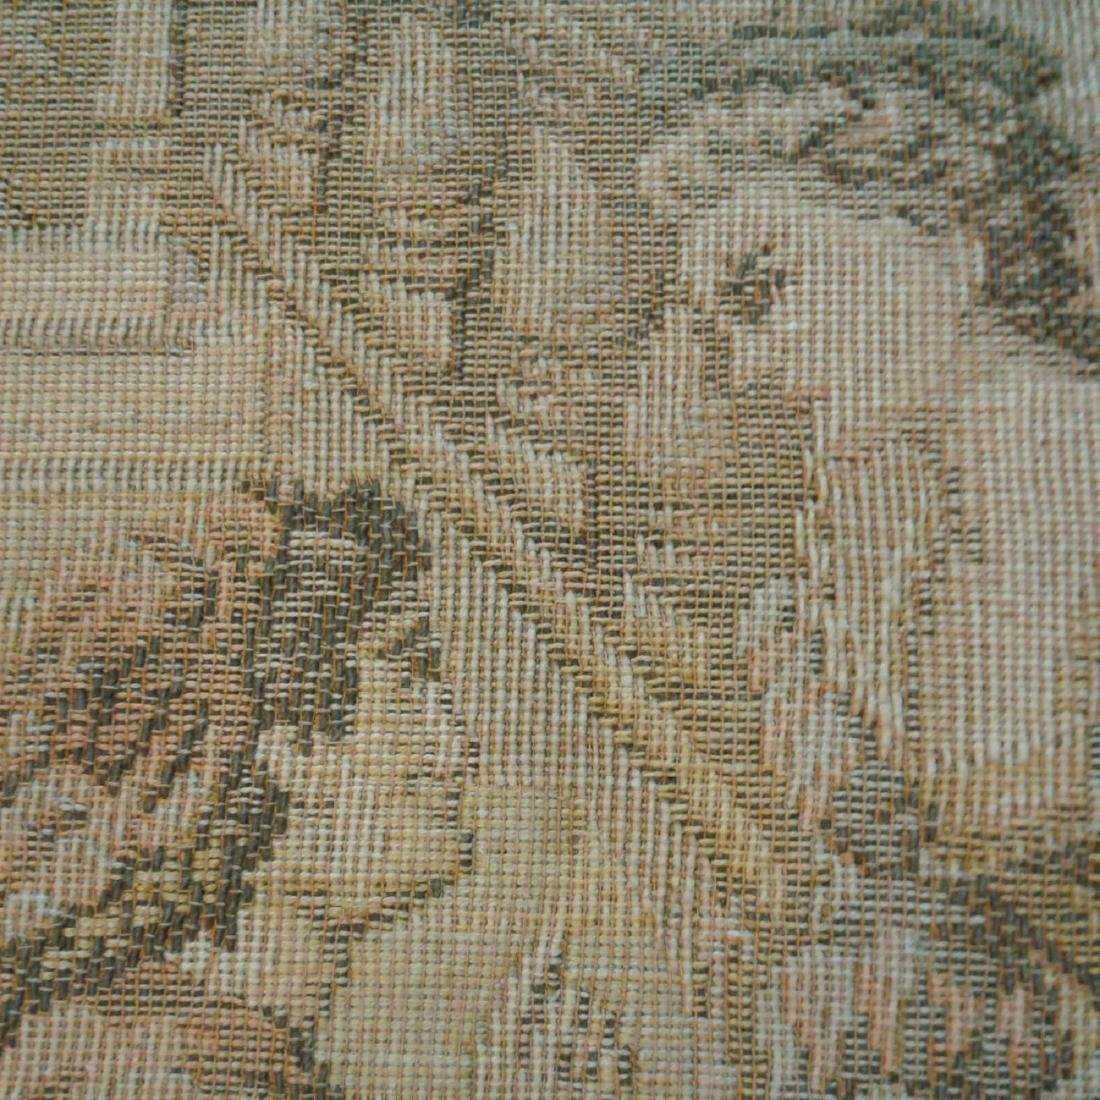 Italy River Park Woven Art Picture - 7